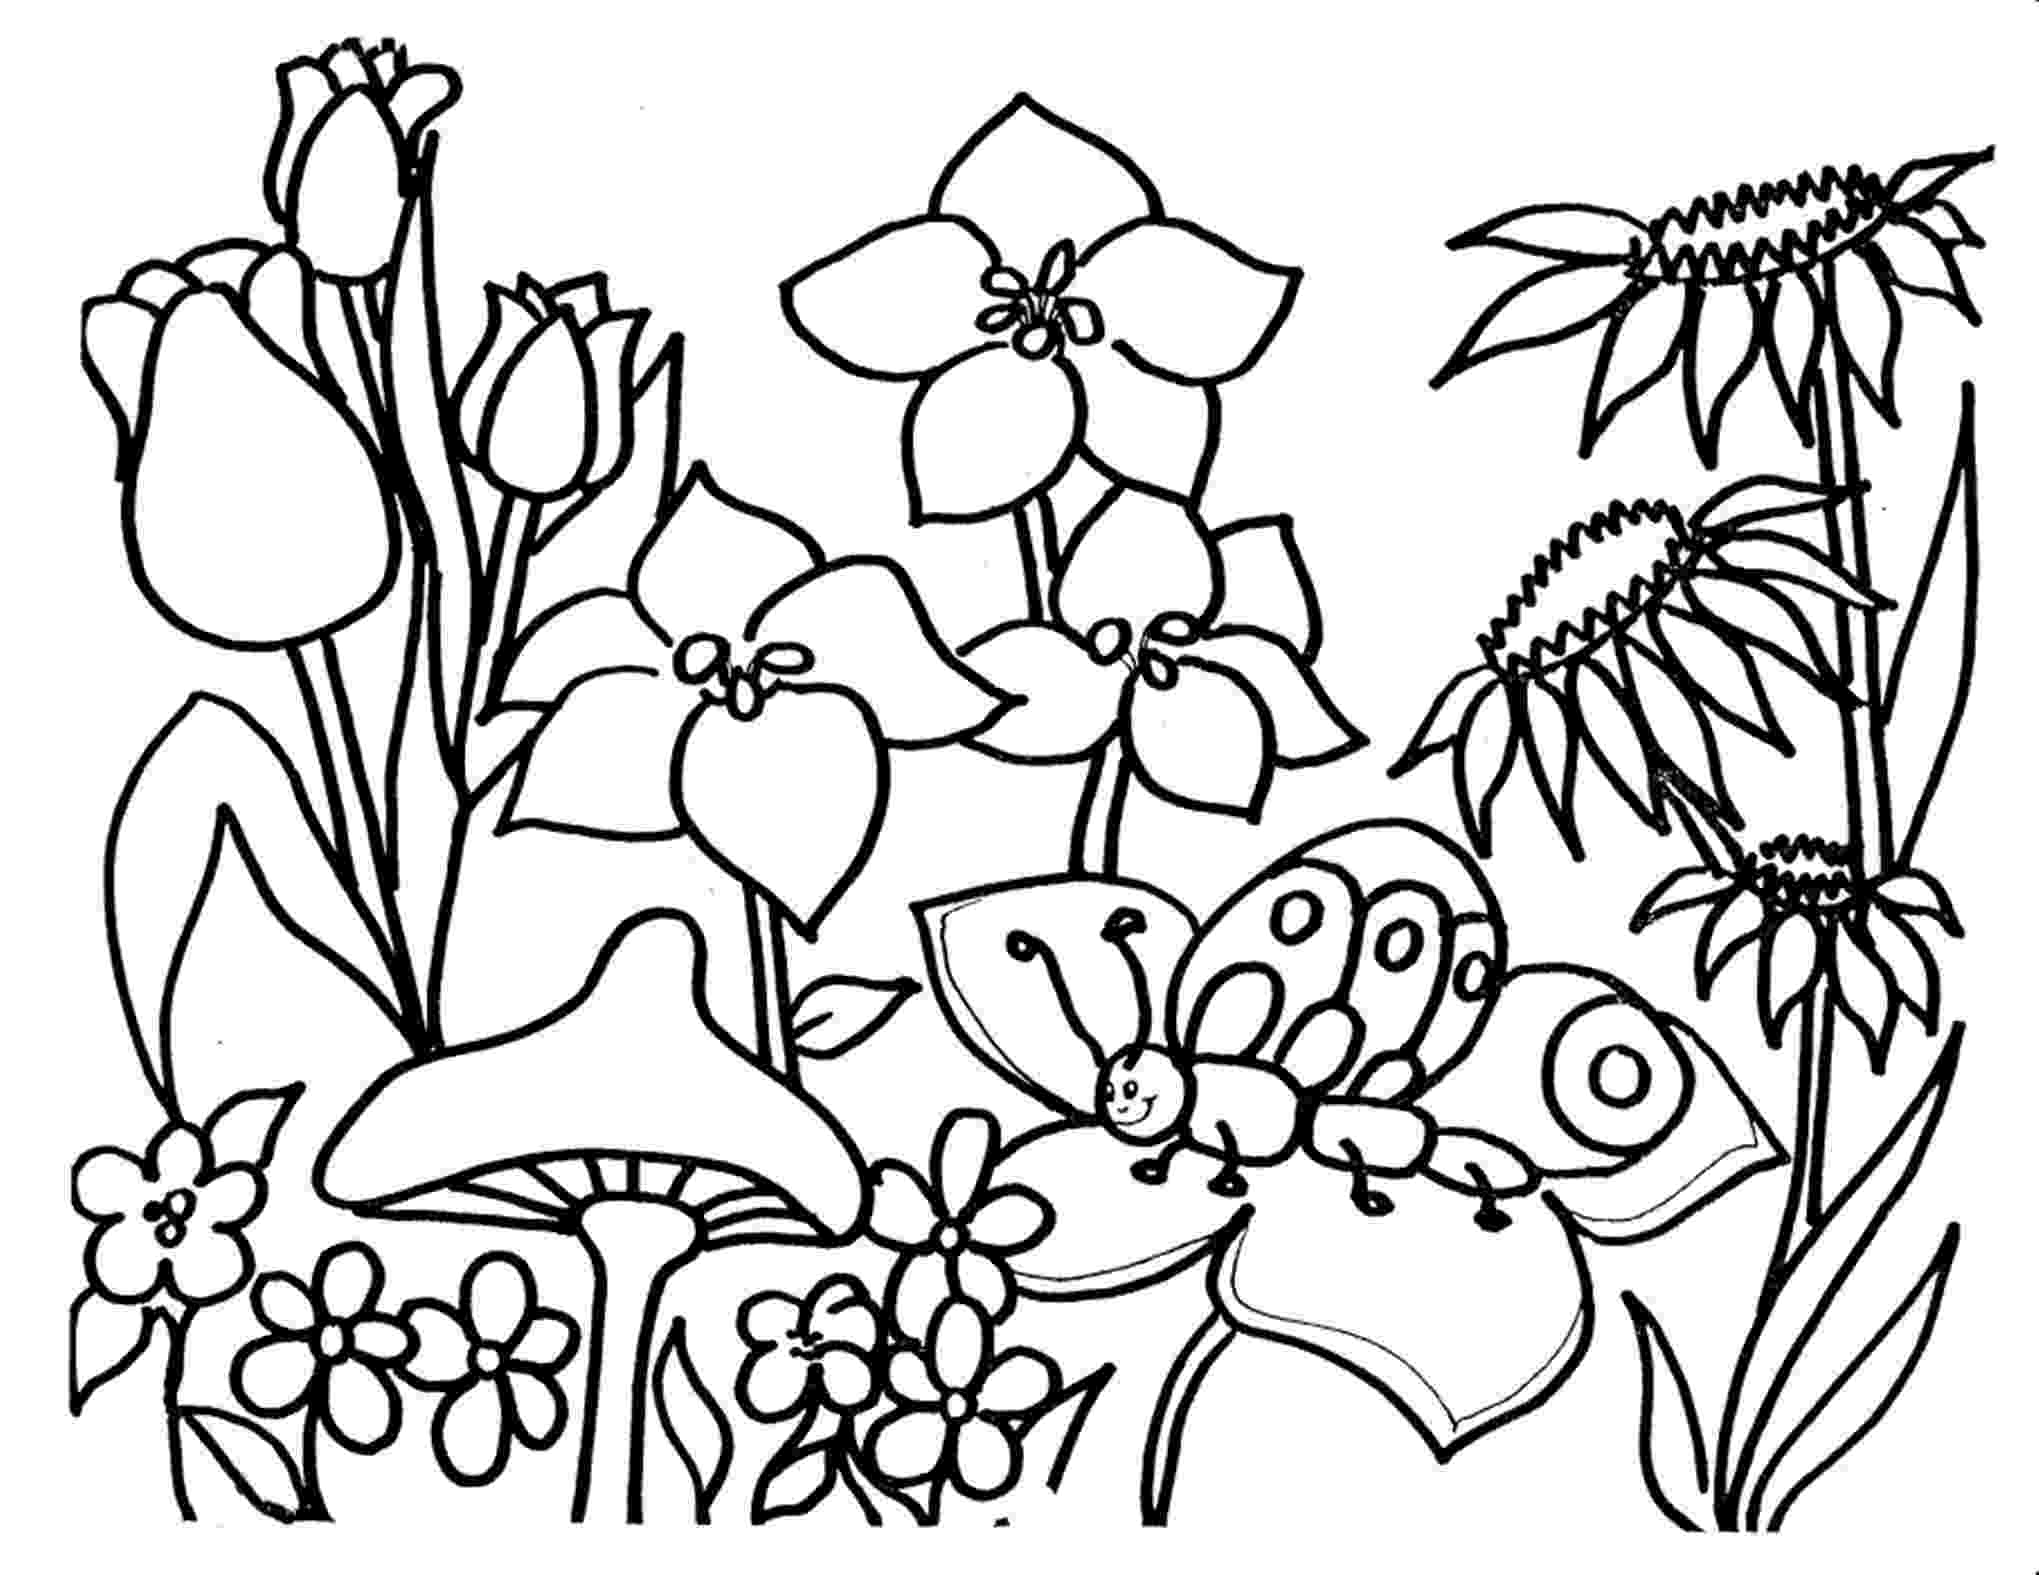 flowers coloring pages for kids free printable flower coloring pages for kids best pages for coloring flowers kids